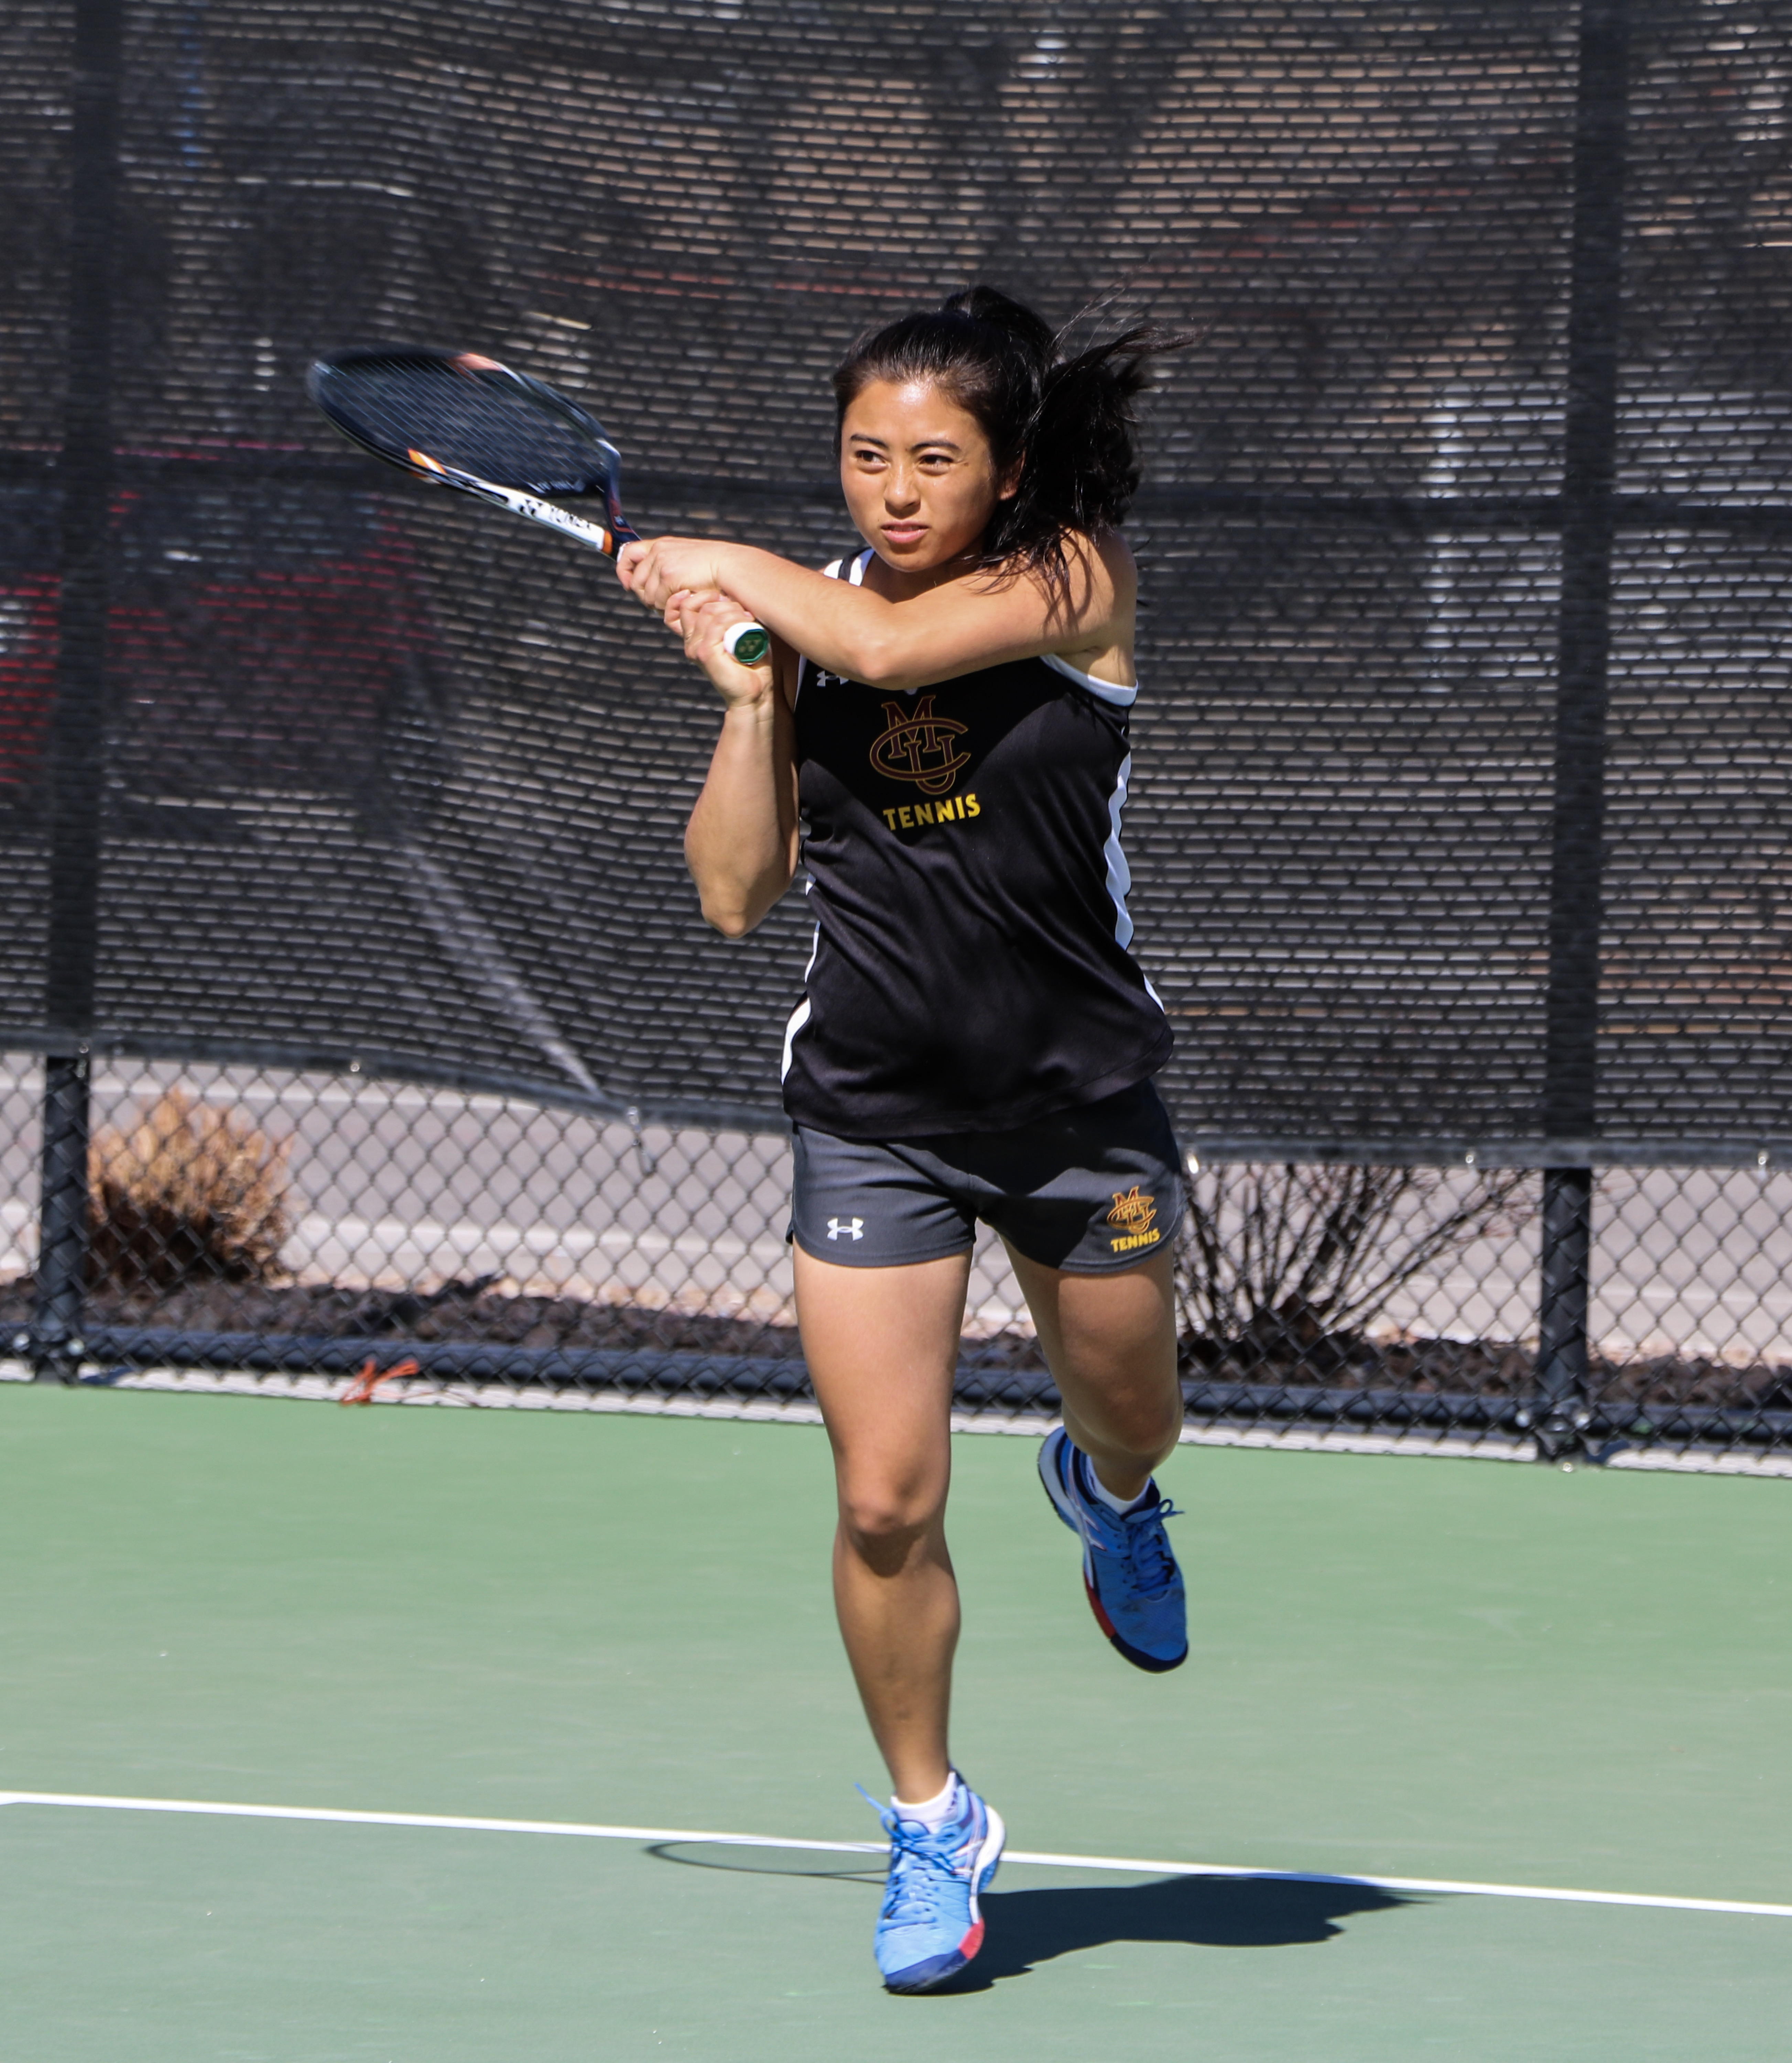 Men's And Women's Tennis Serve Cougars And Thunderwolves